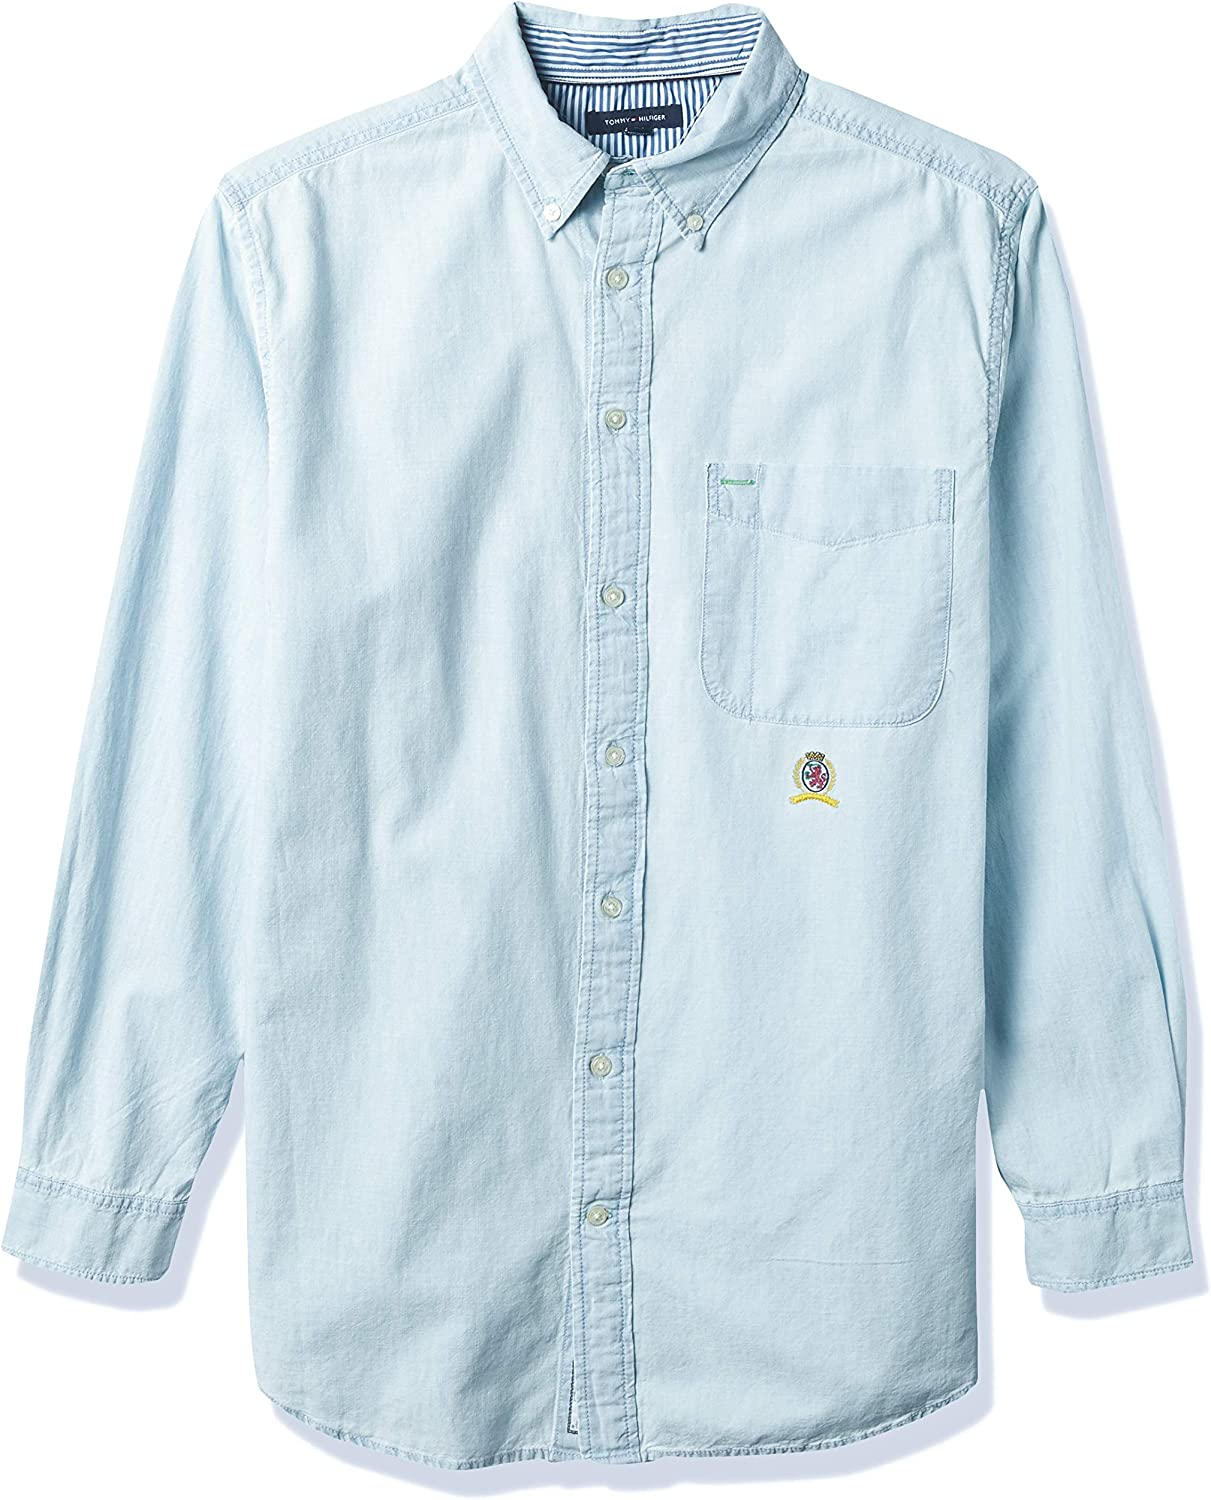 Tommy Hilfiger Big & Tall Men's Big and Tall Iconic Long Sleeve Button Down Shirt in Custom Fit